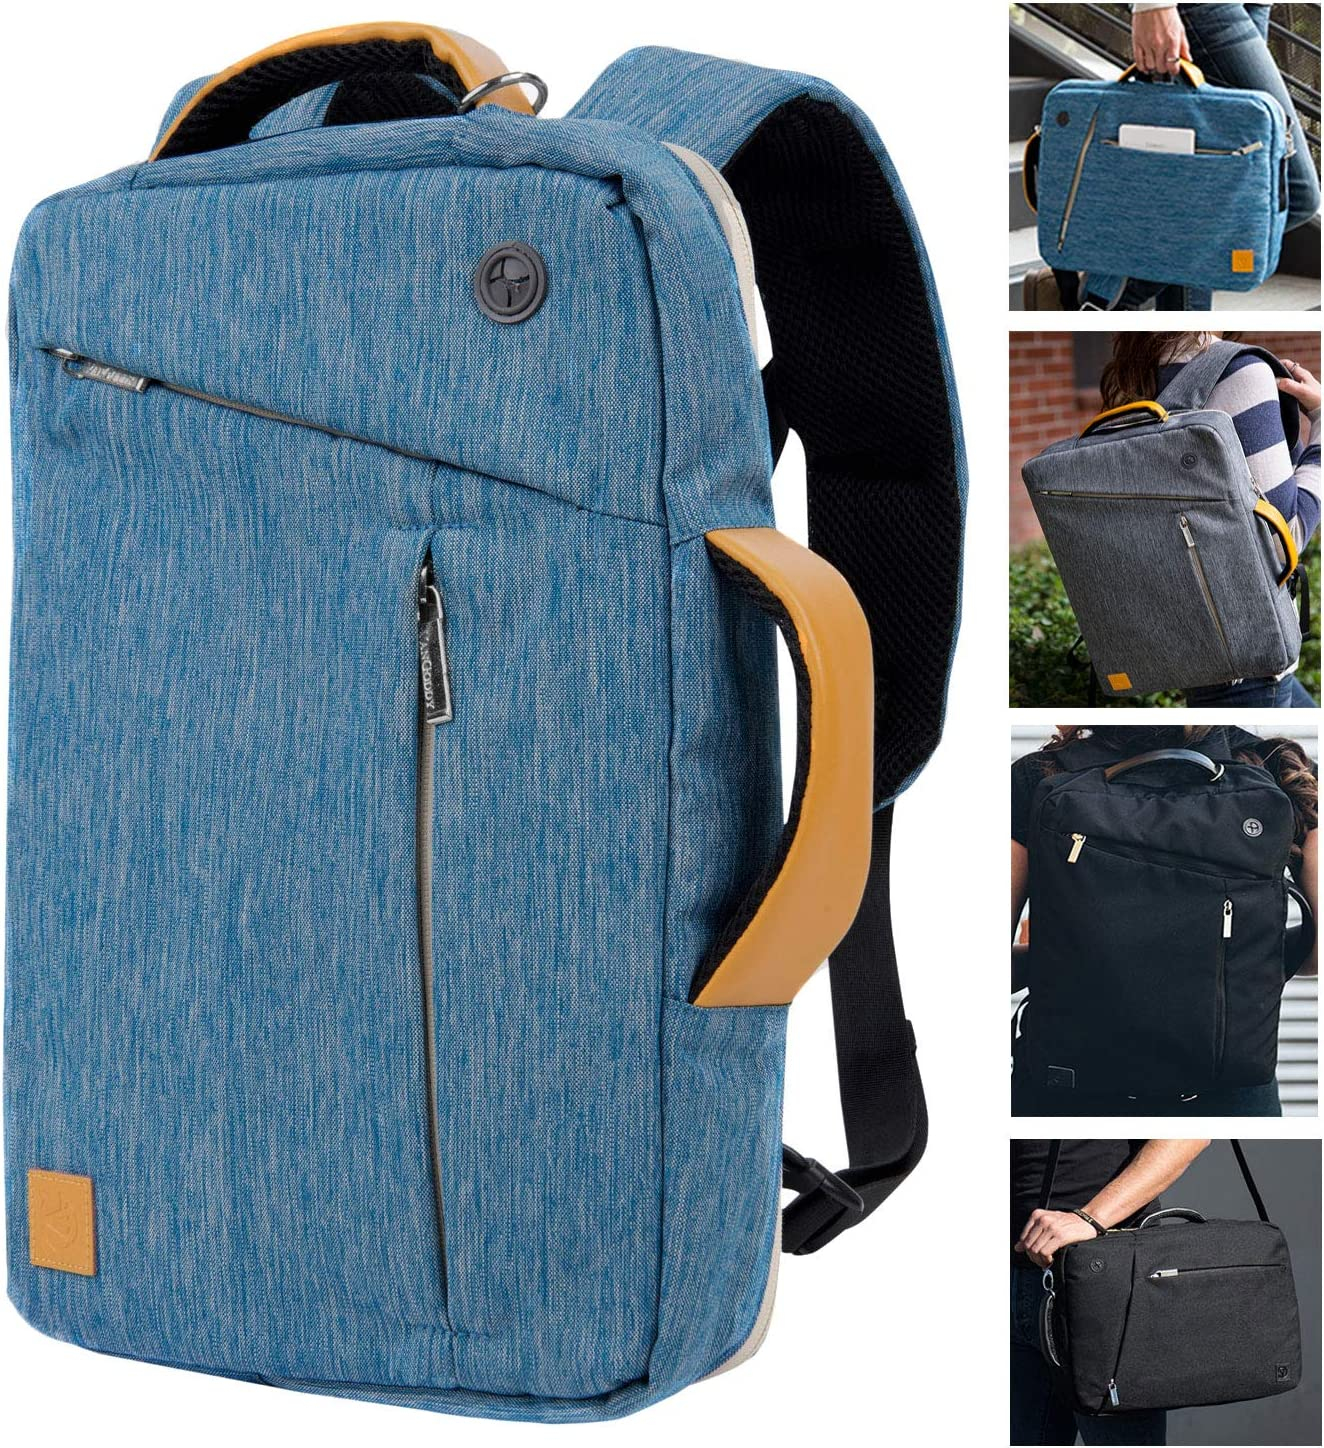 Roxie 15.6 inch Convertible Laptop Backpack Sleeve Case for Lenovo IdeaPad 330 320 HP 15 Pavilion Pro 15 x360 15.6 Acer Aspire 6 CB515 Chromebook DELL Inpiron 15 5000 5570 G3 15 Gaming